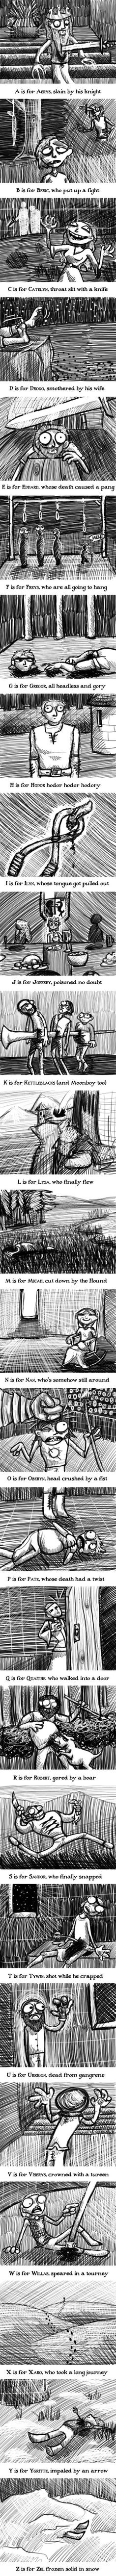 Game of Thrones deaths Edward Gorey style. SPOILERS